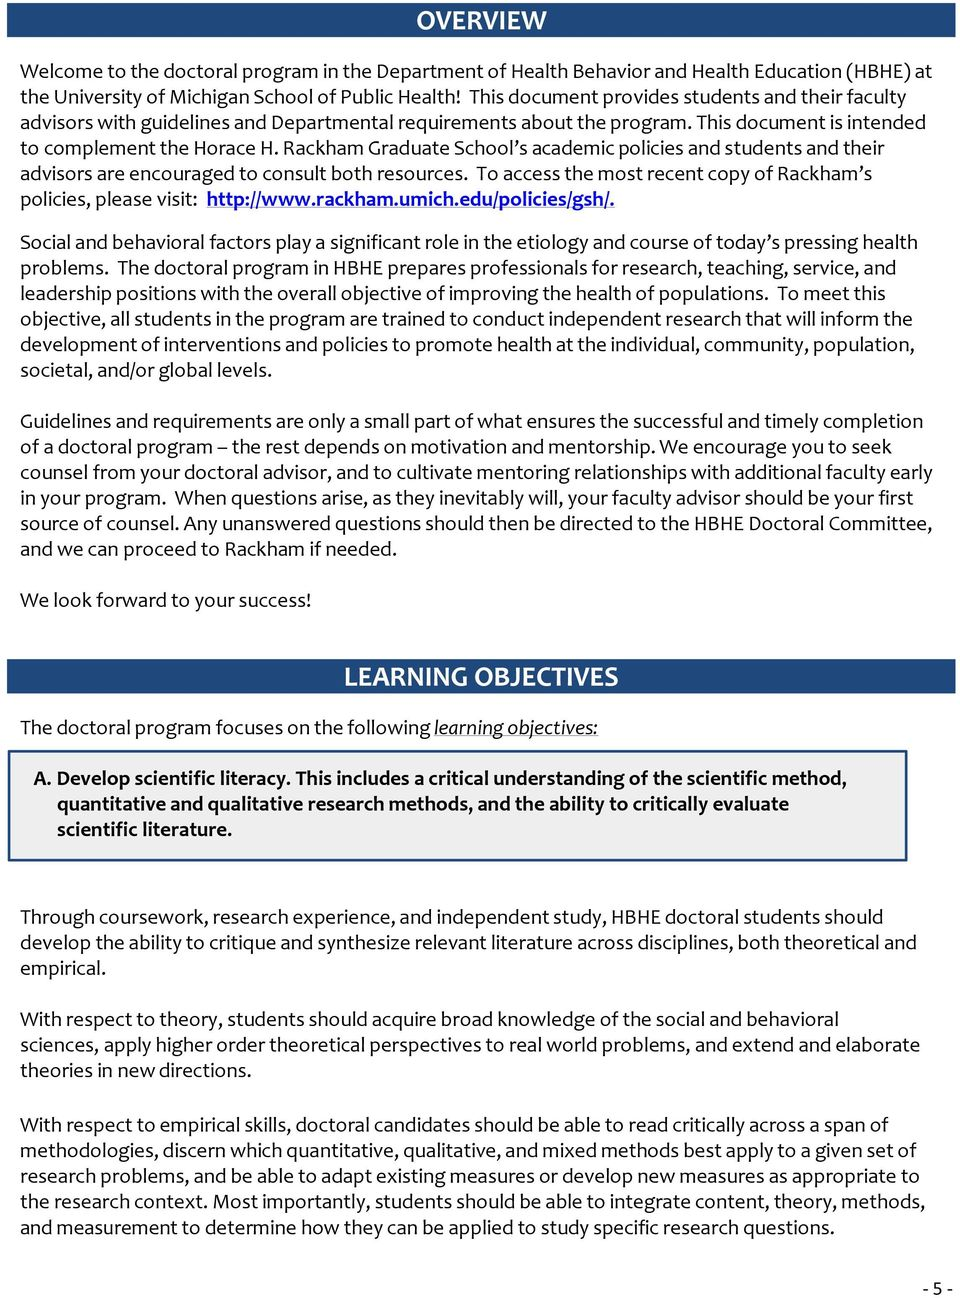 Rackham Graduate School s academic policies and students and their advisors are encouraged to consult both resources. To access the most recent copy of Rackham s policies, please visit: http://www.